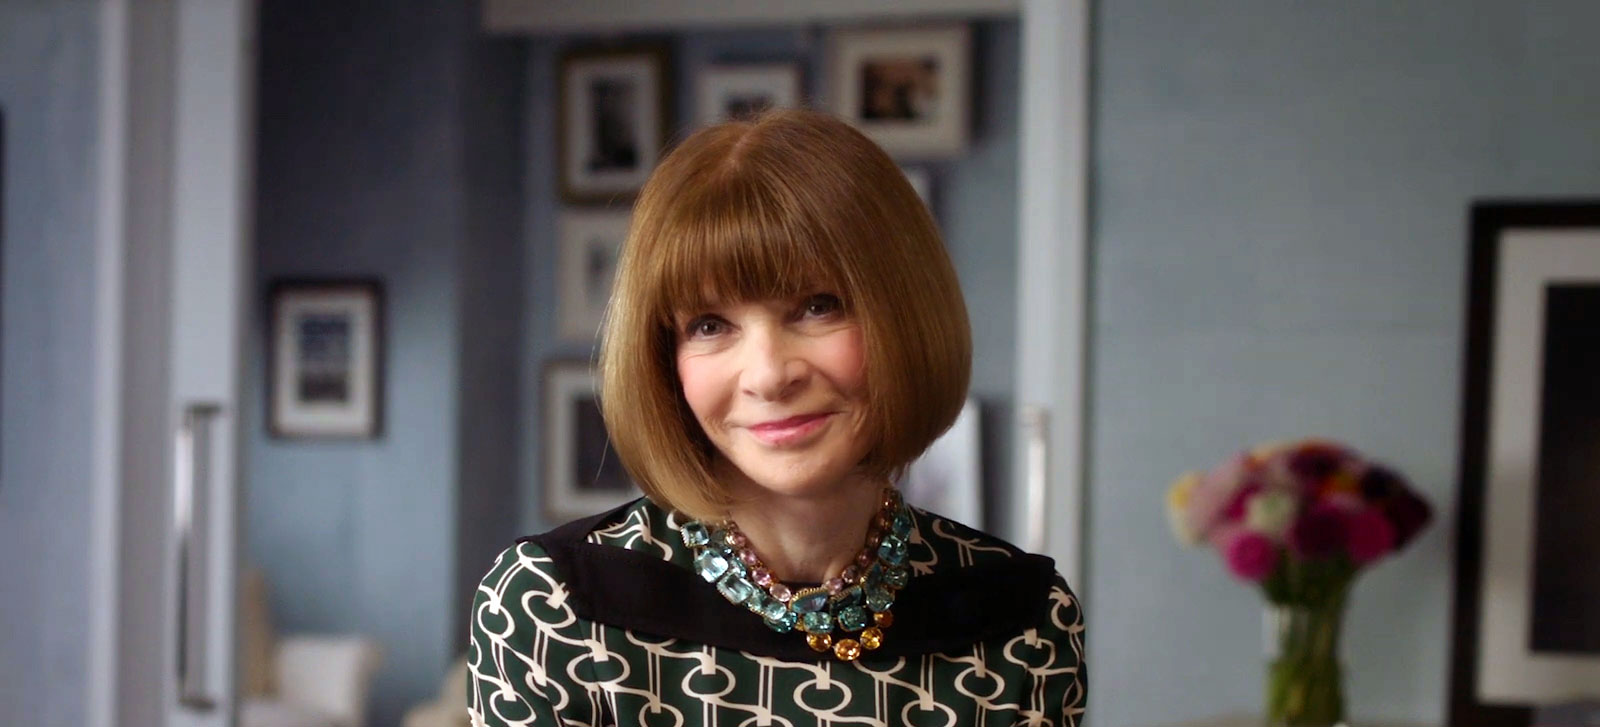 I Took the Anna Wintour Creative Leadership MasterClass So You Don't Have To